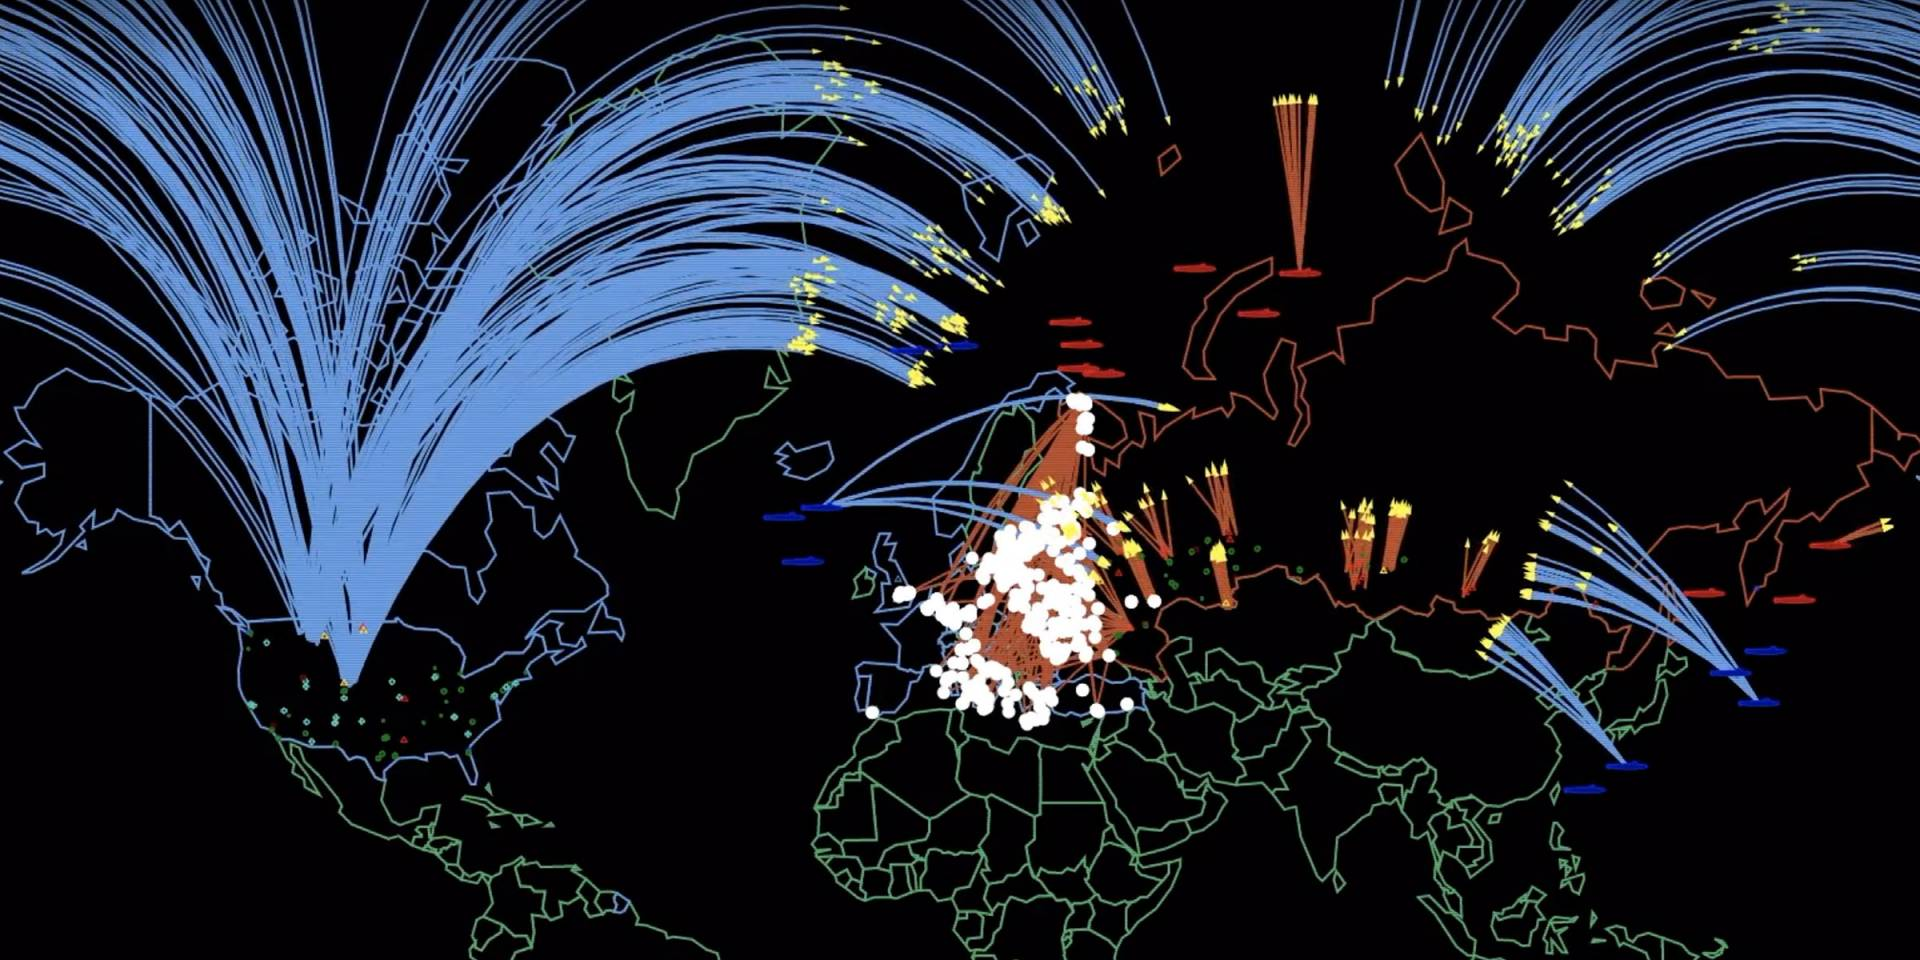 Video still of map with lines depicting nuclear war